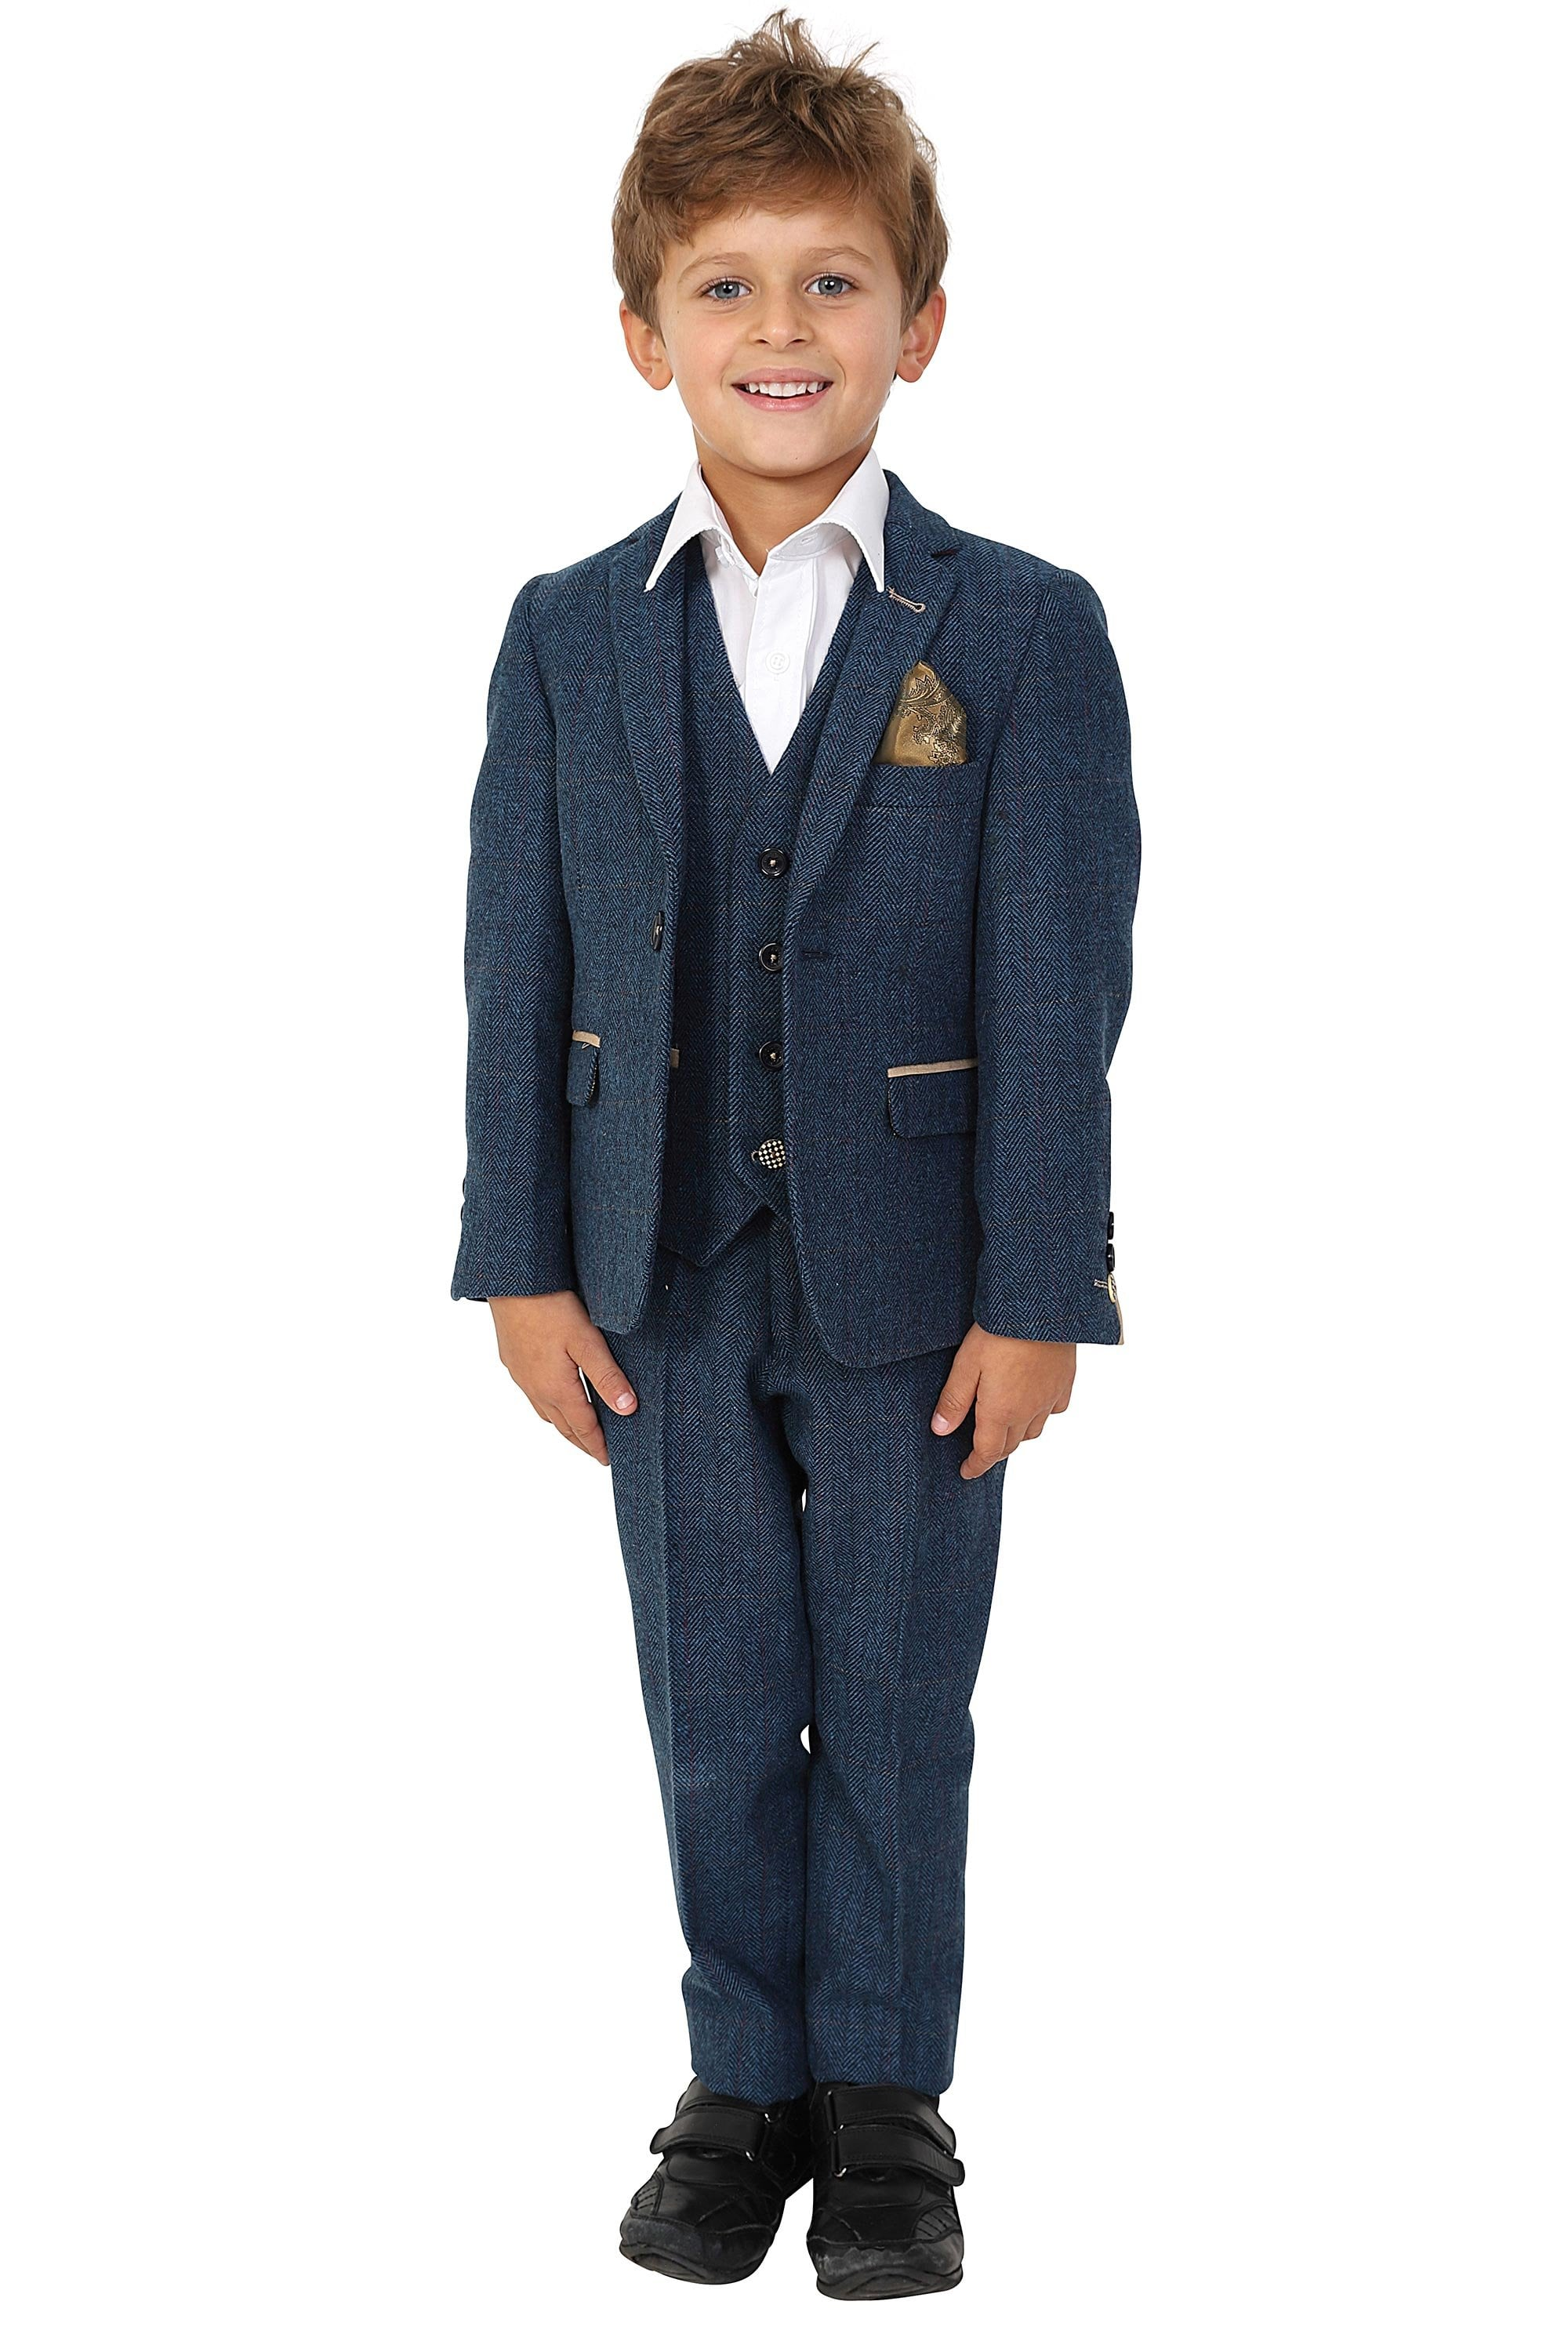 Marc Darcy Eton Blue Tweed Check Suit for Kids Children Size 7 for 7 Years Old